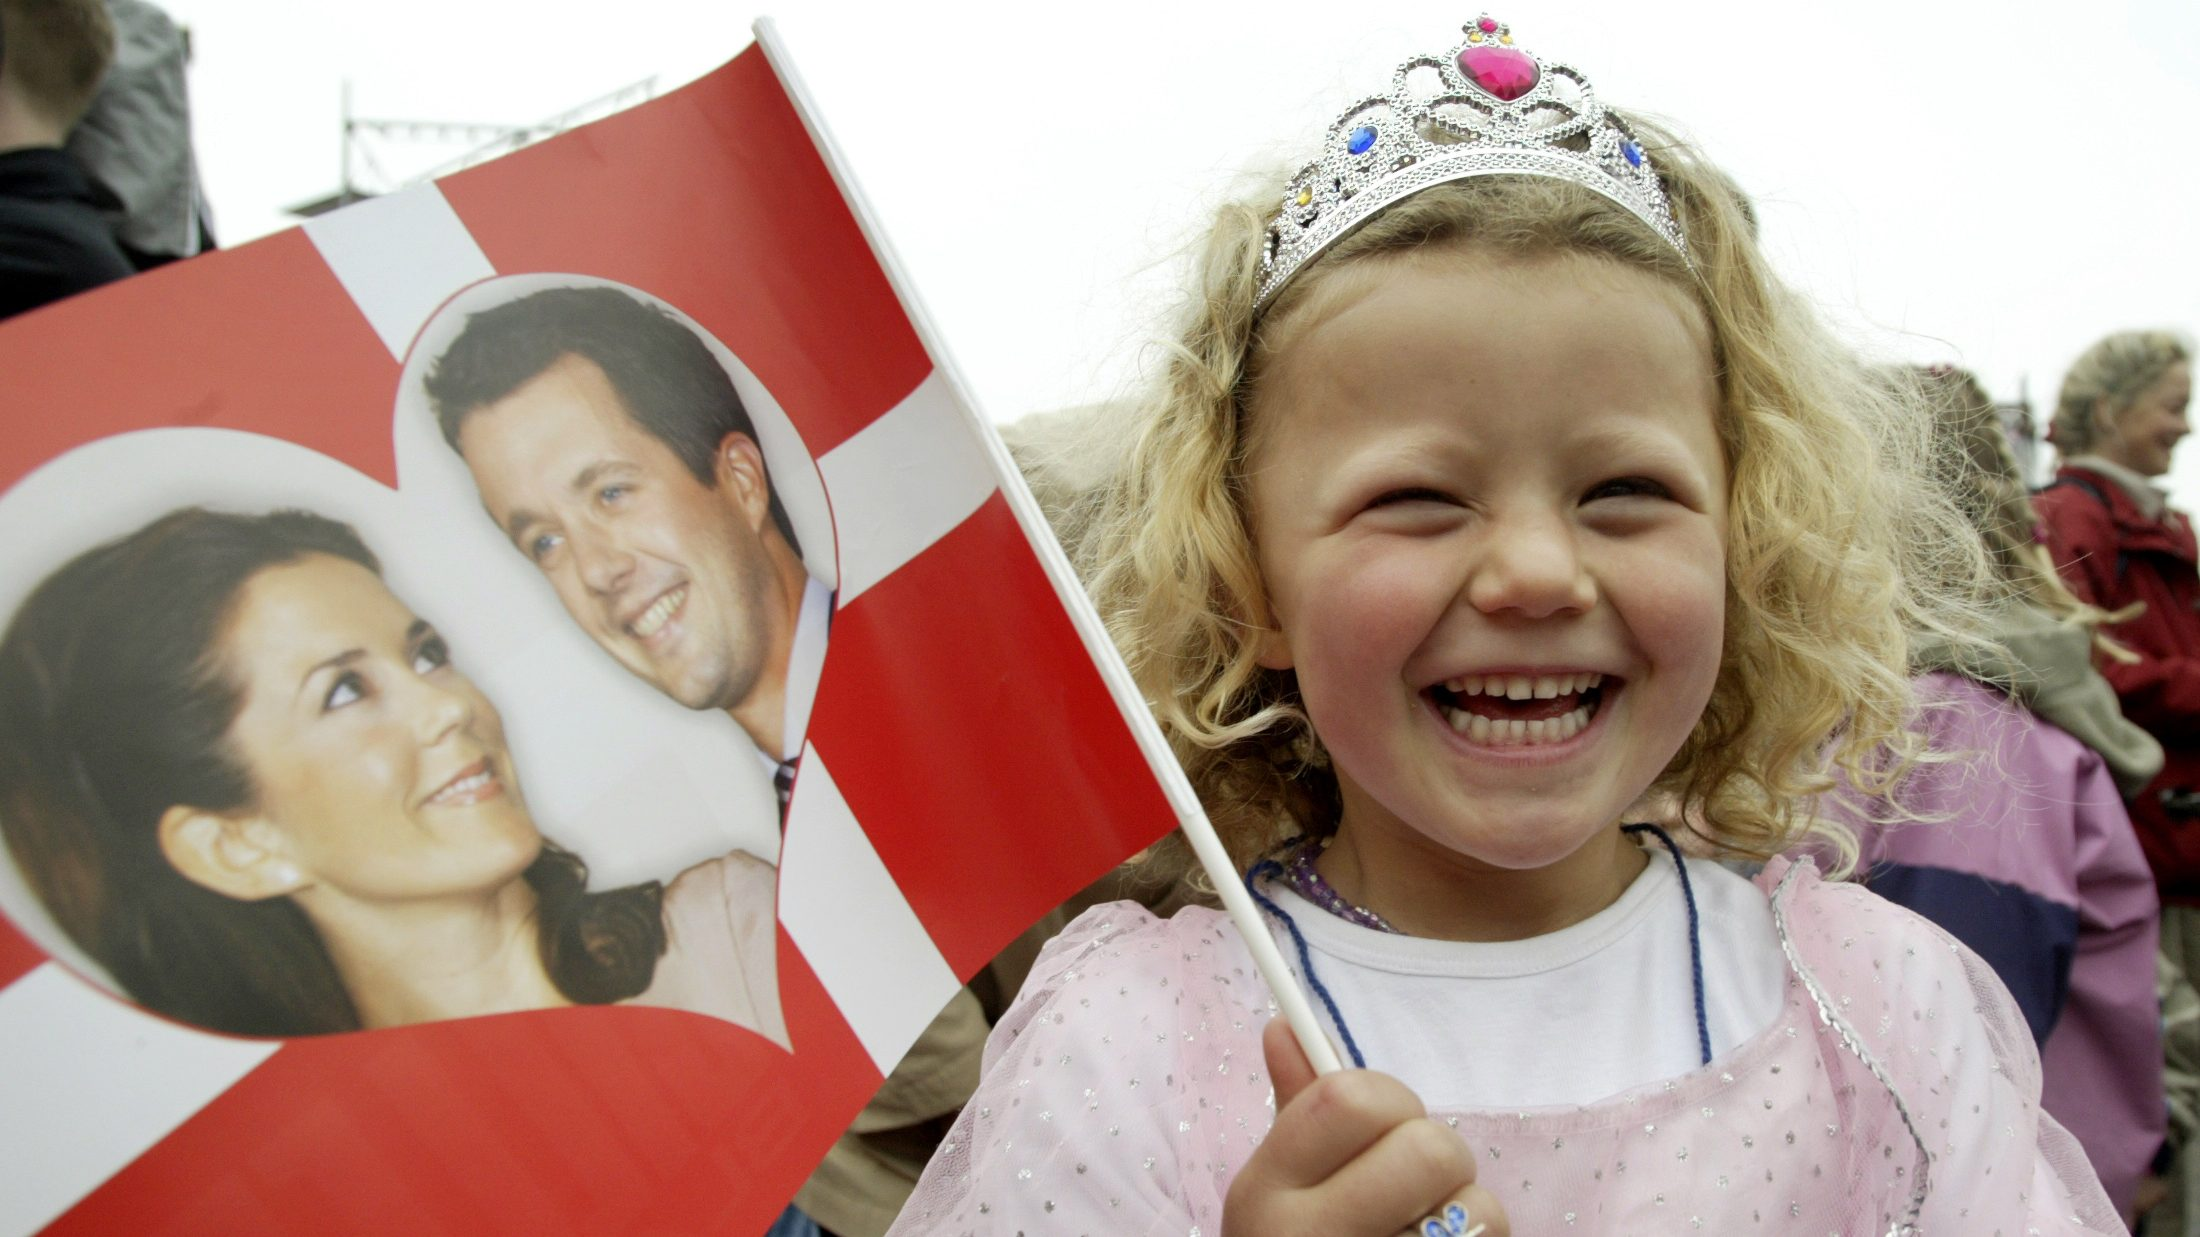 A GIRL DRESSED AS A PRINCESS WAVES WITH A FLAG SHOWING THE ROYAL COUPLE DANISH CROWN PRINCE FREDIK ...